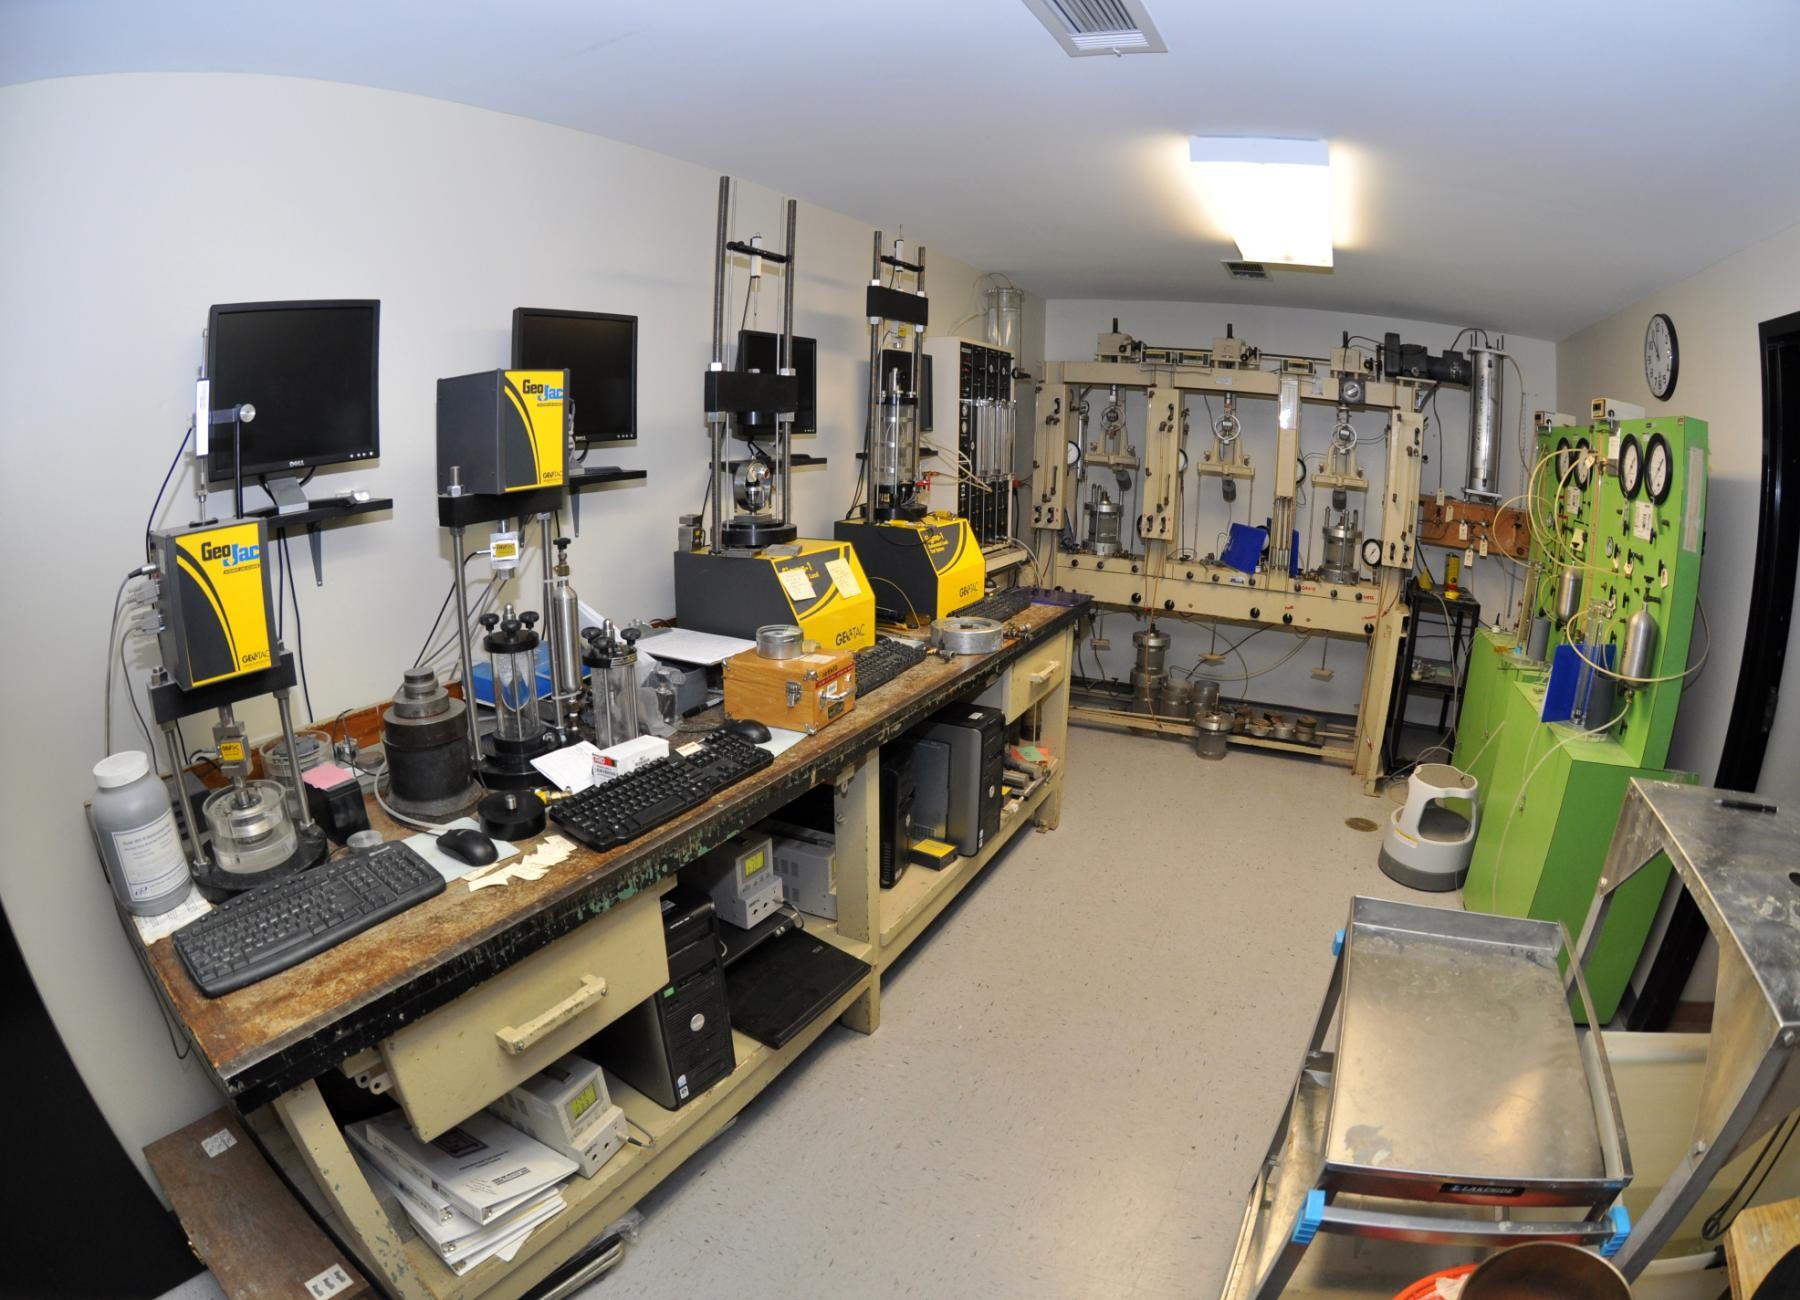 Building Test Instruments : Usace lab a worldwide leader in materials testing